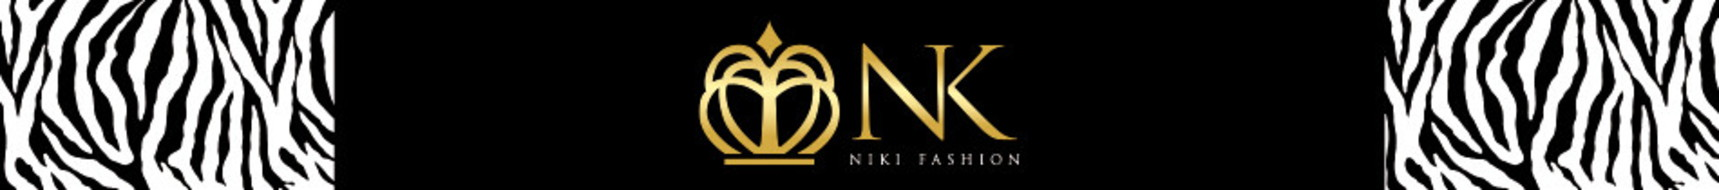 Niki Fashion